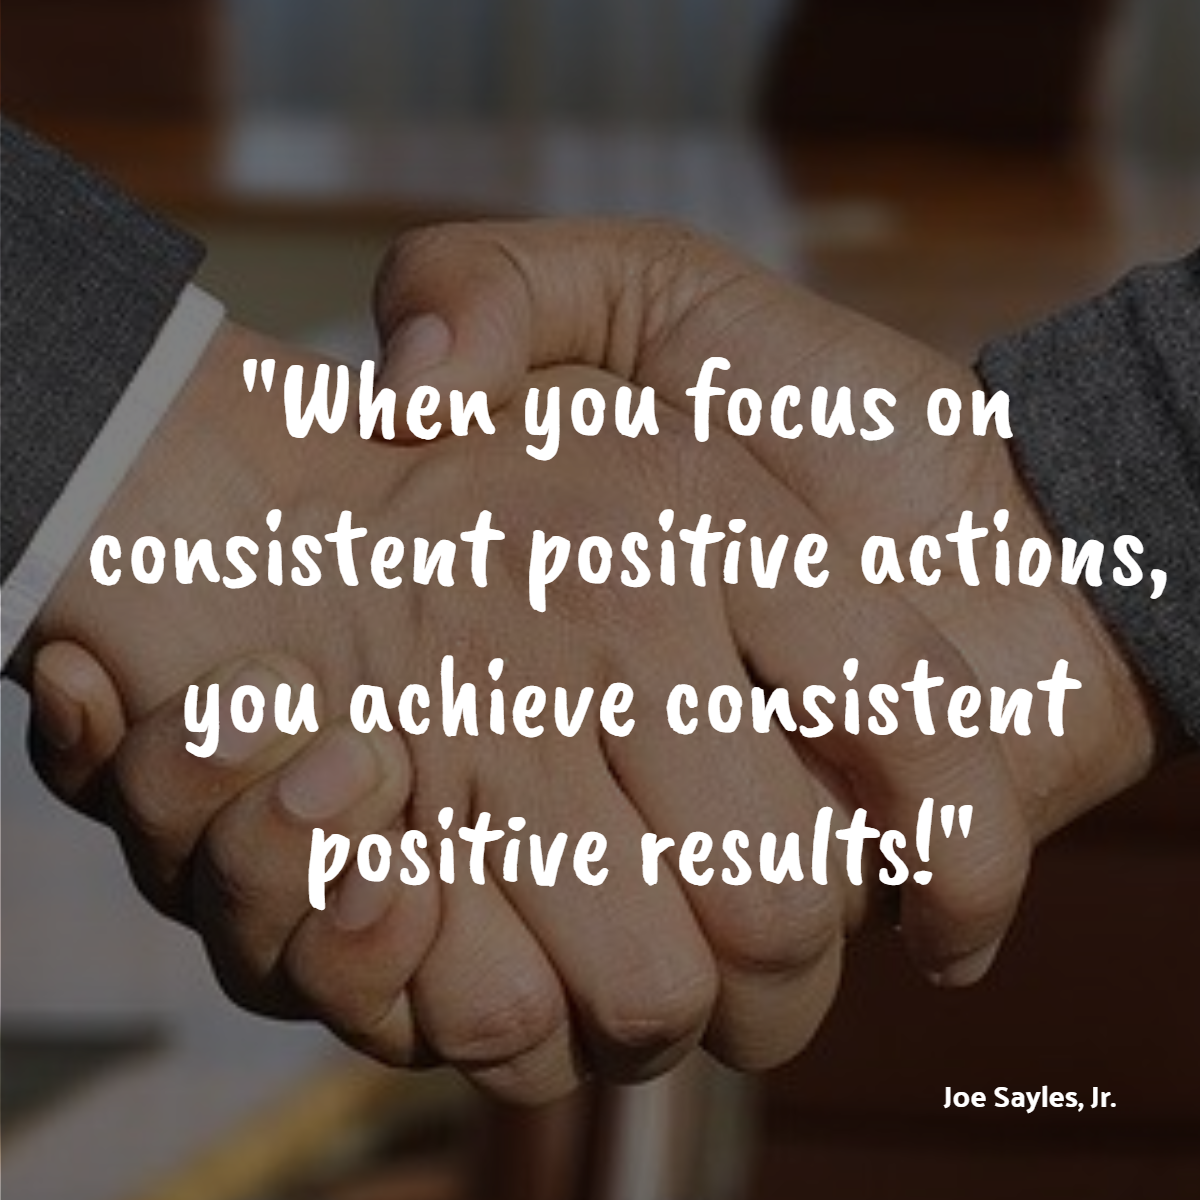 Viral Post - Focus on Consistent Actions